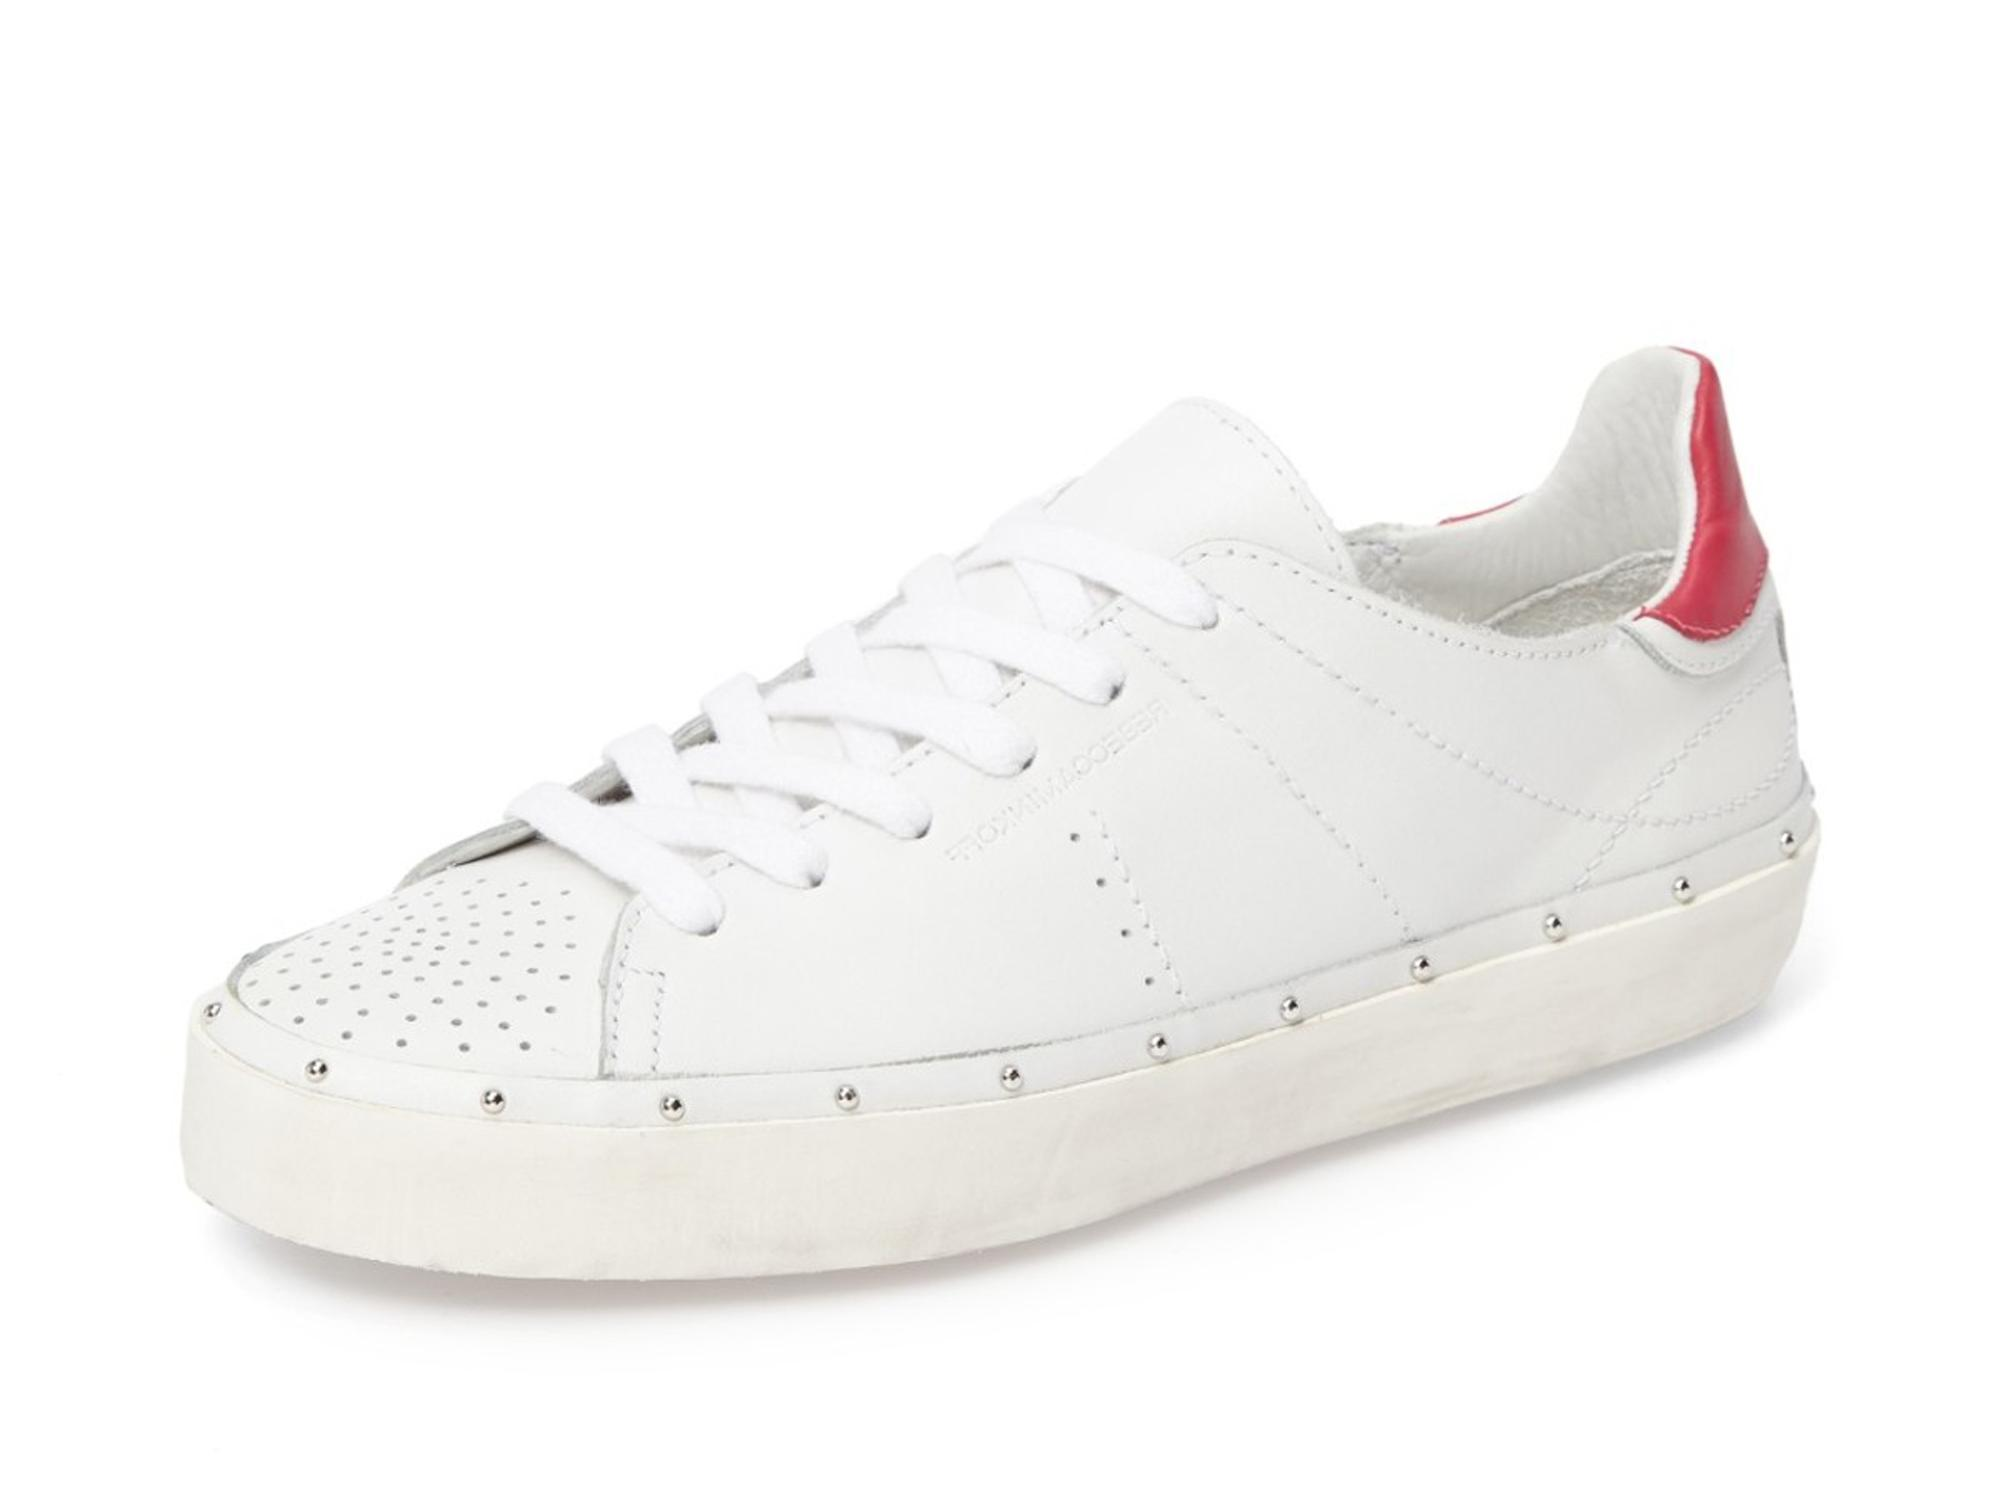 Rebecca Minkoff White Michell Distressed US Sole Studded Sneakers Size US Distressed 9 Regular (M, B) d486e2